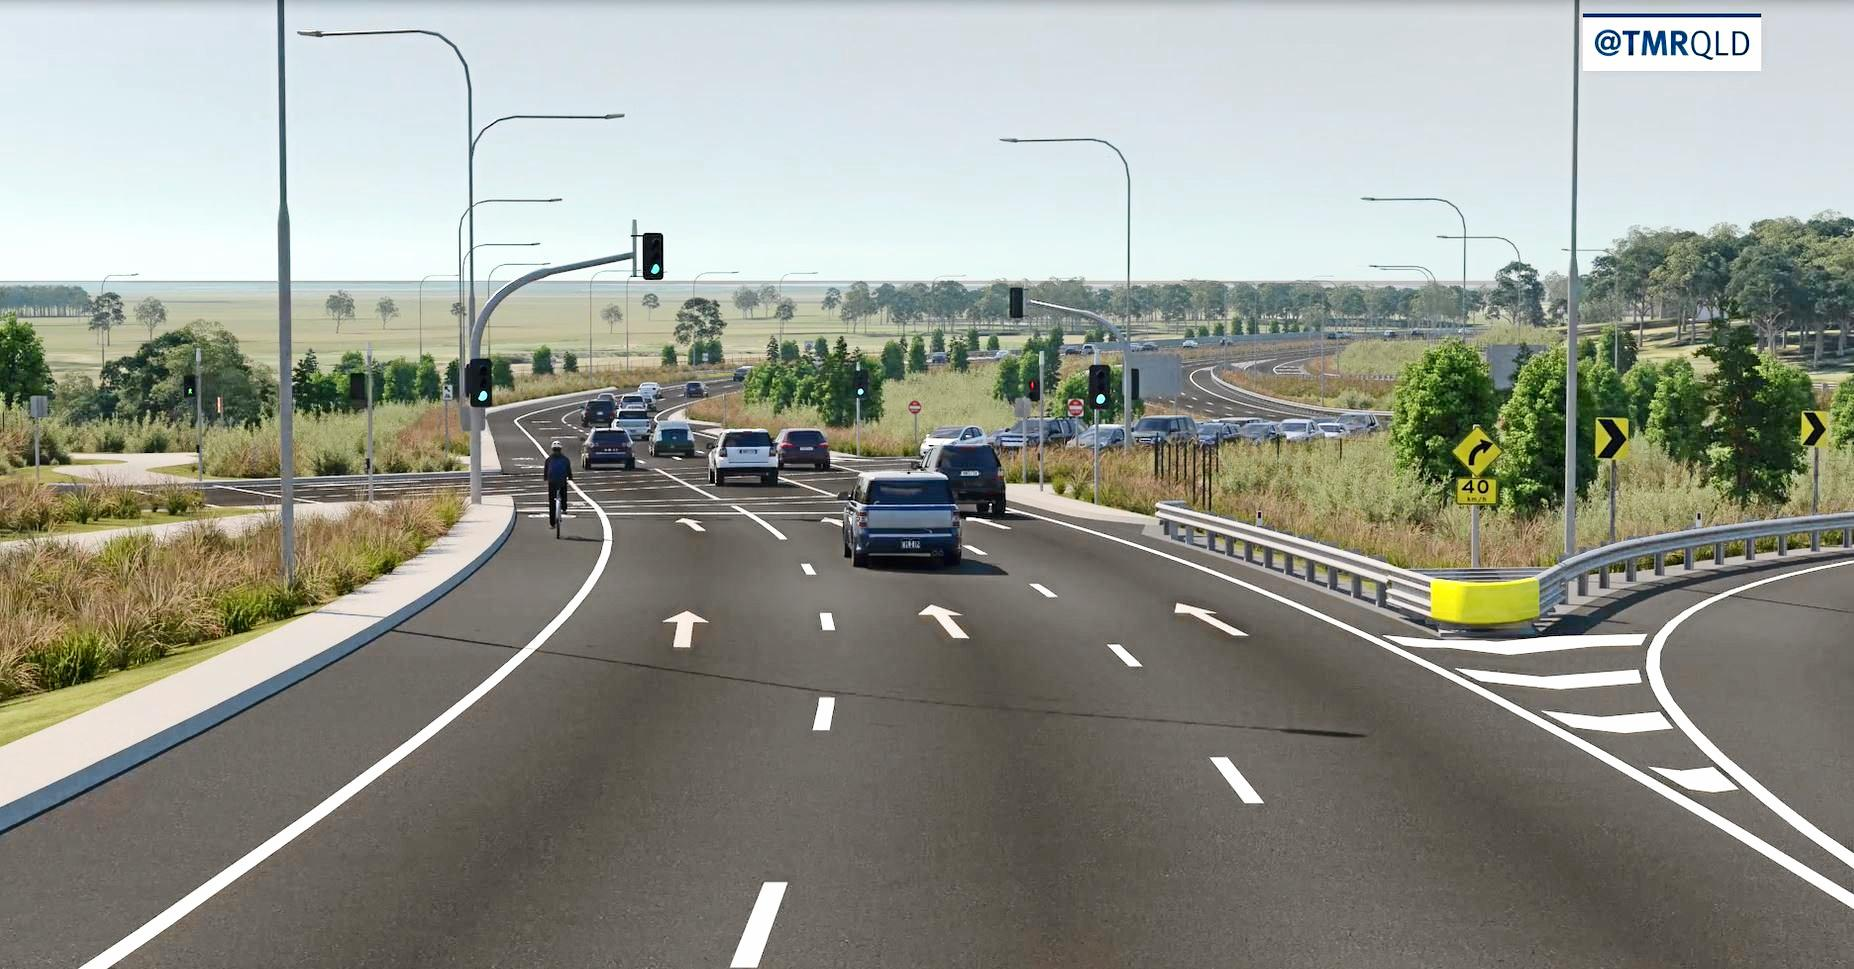 Minister for Transport and Main Roads Mark Bailey said the Caloundra Rd to Sunshine Motorway upgrade would improve safety, increase efficiency and reduce congestion on the Bruce Highway.